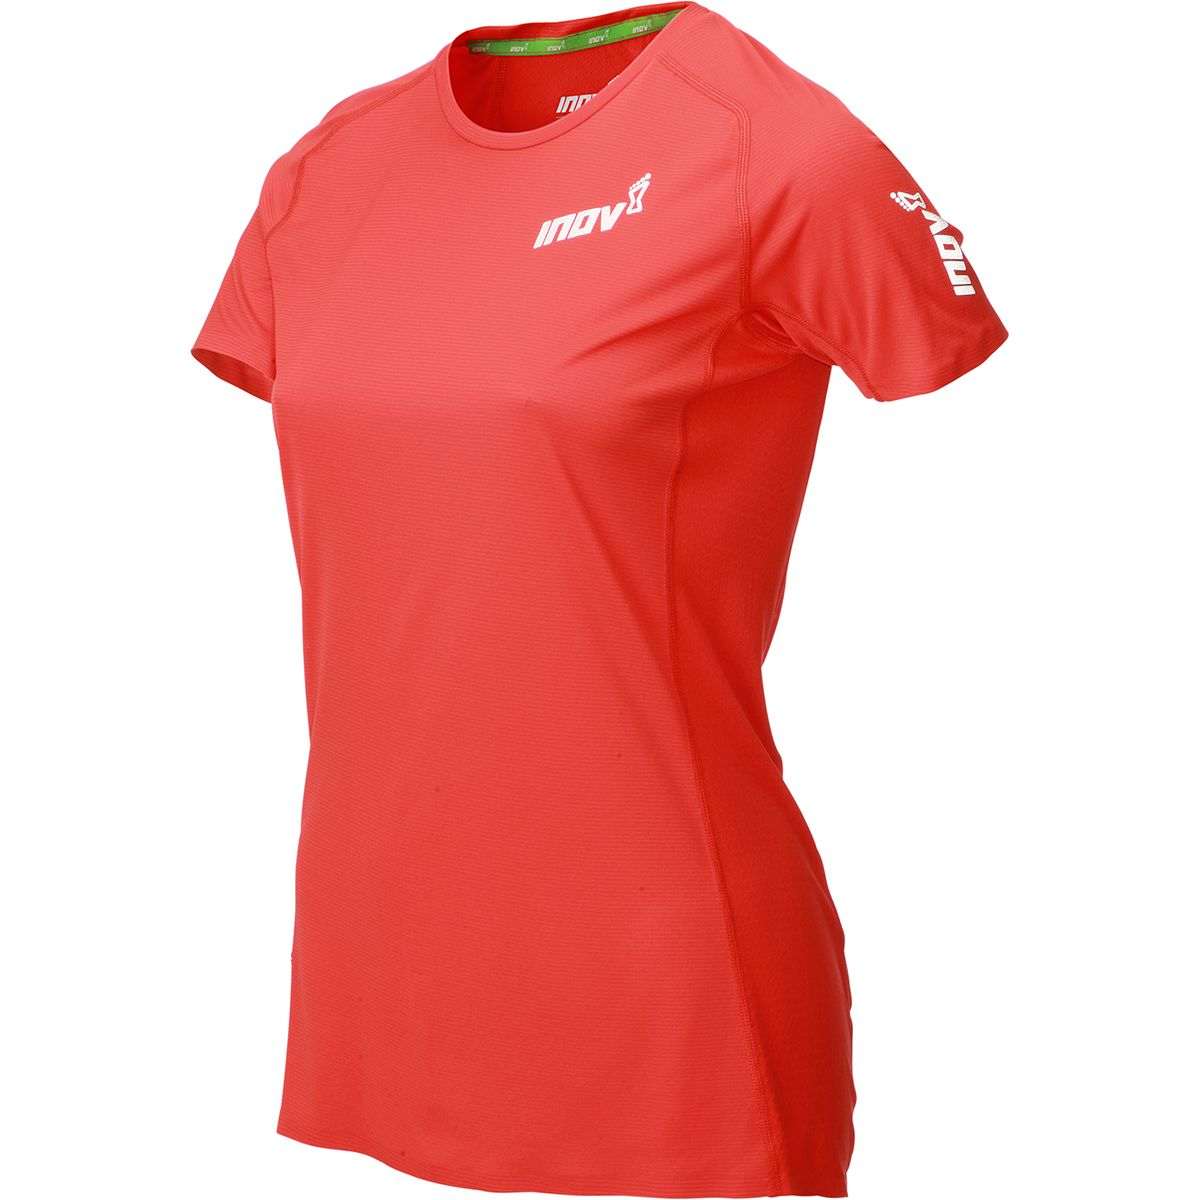 Inov-8 Damen Base Elite T-Shirt (Größe XS, Rot) | T-Shirts Funktion > Damen